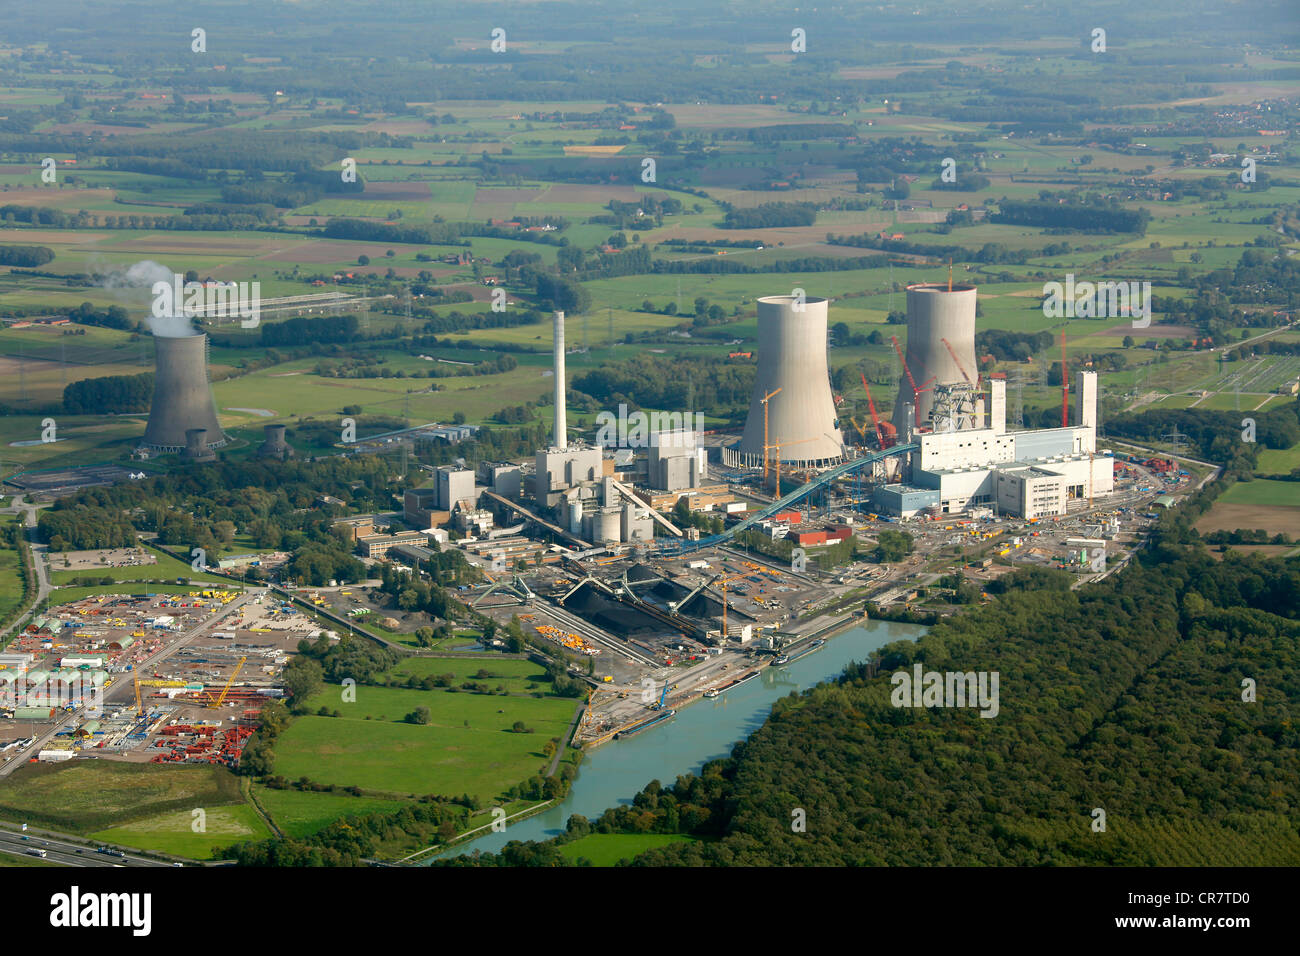 Aerial view, former THTR-300 Nuclear Power Plant, today Westfalen coal power station, under construction, safe enclosure, - Stock Image